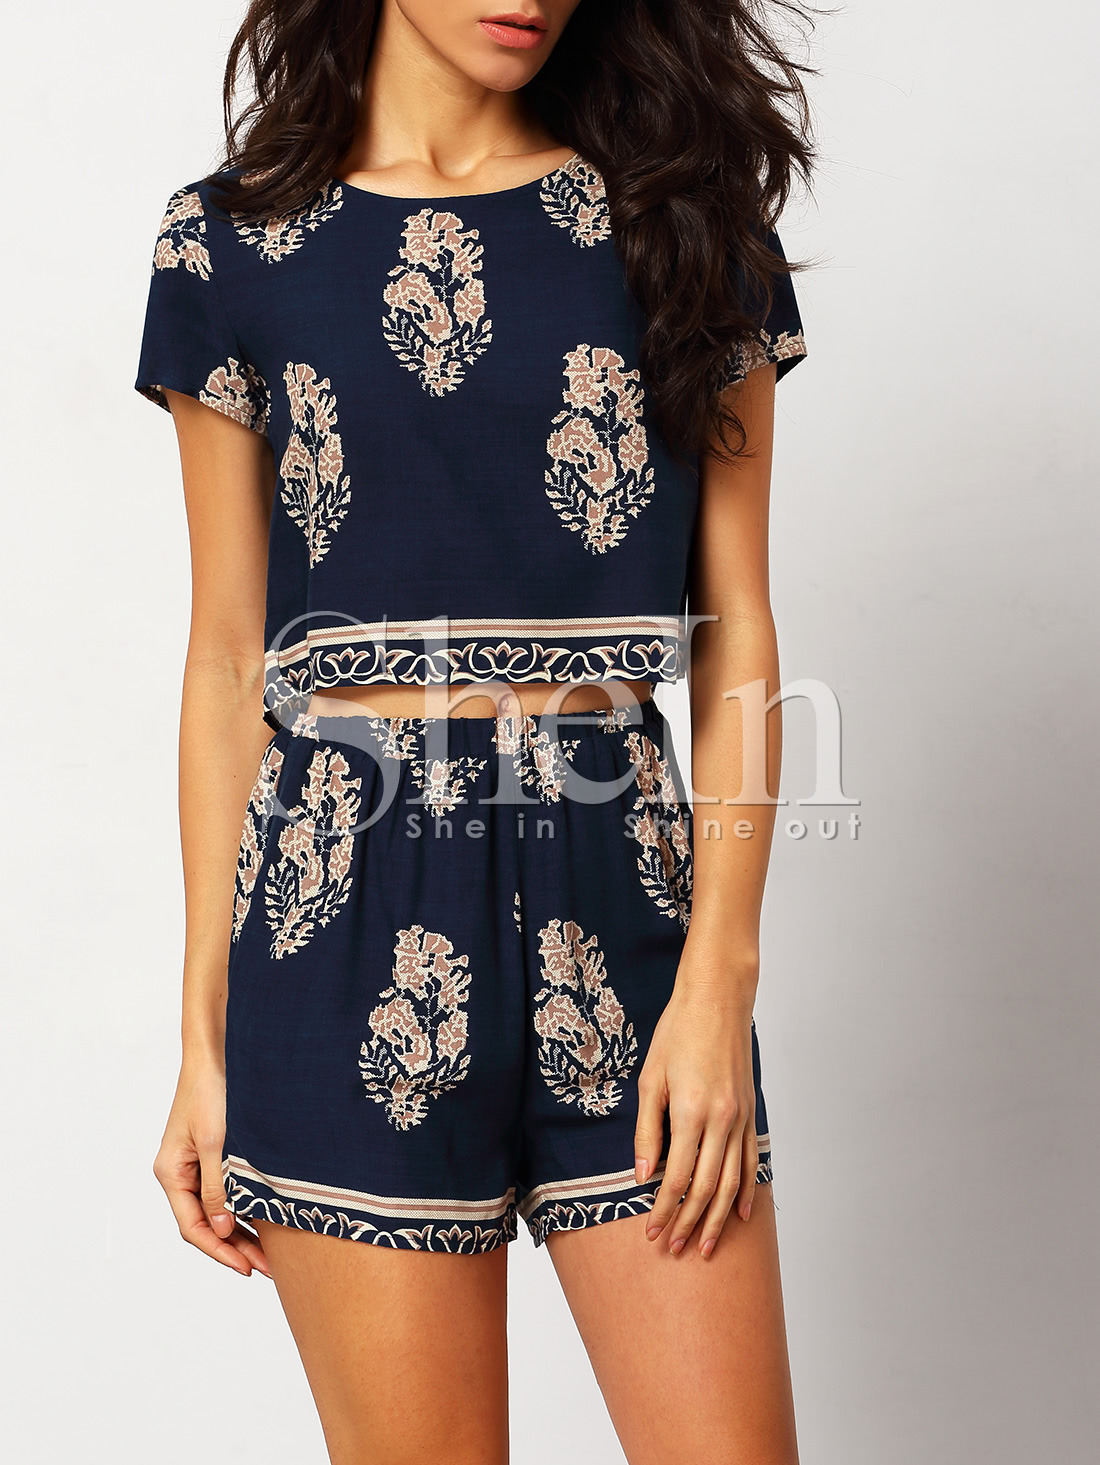 0f591492c0ffd0 Blue White Short Sleeve Floral Crop Top With Shorts Suits - Latest ...